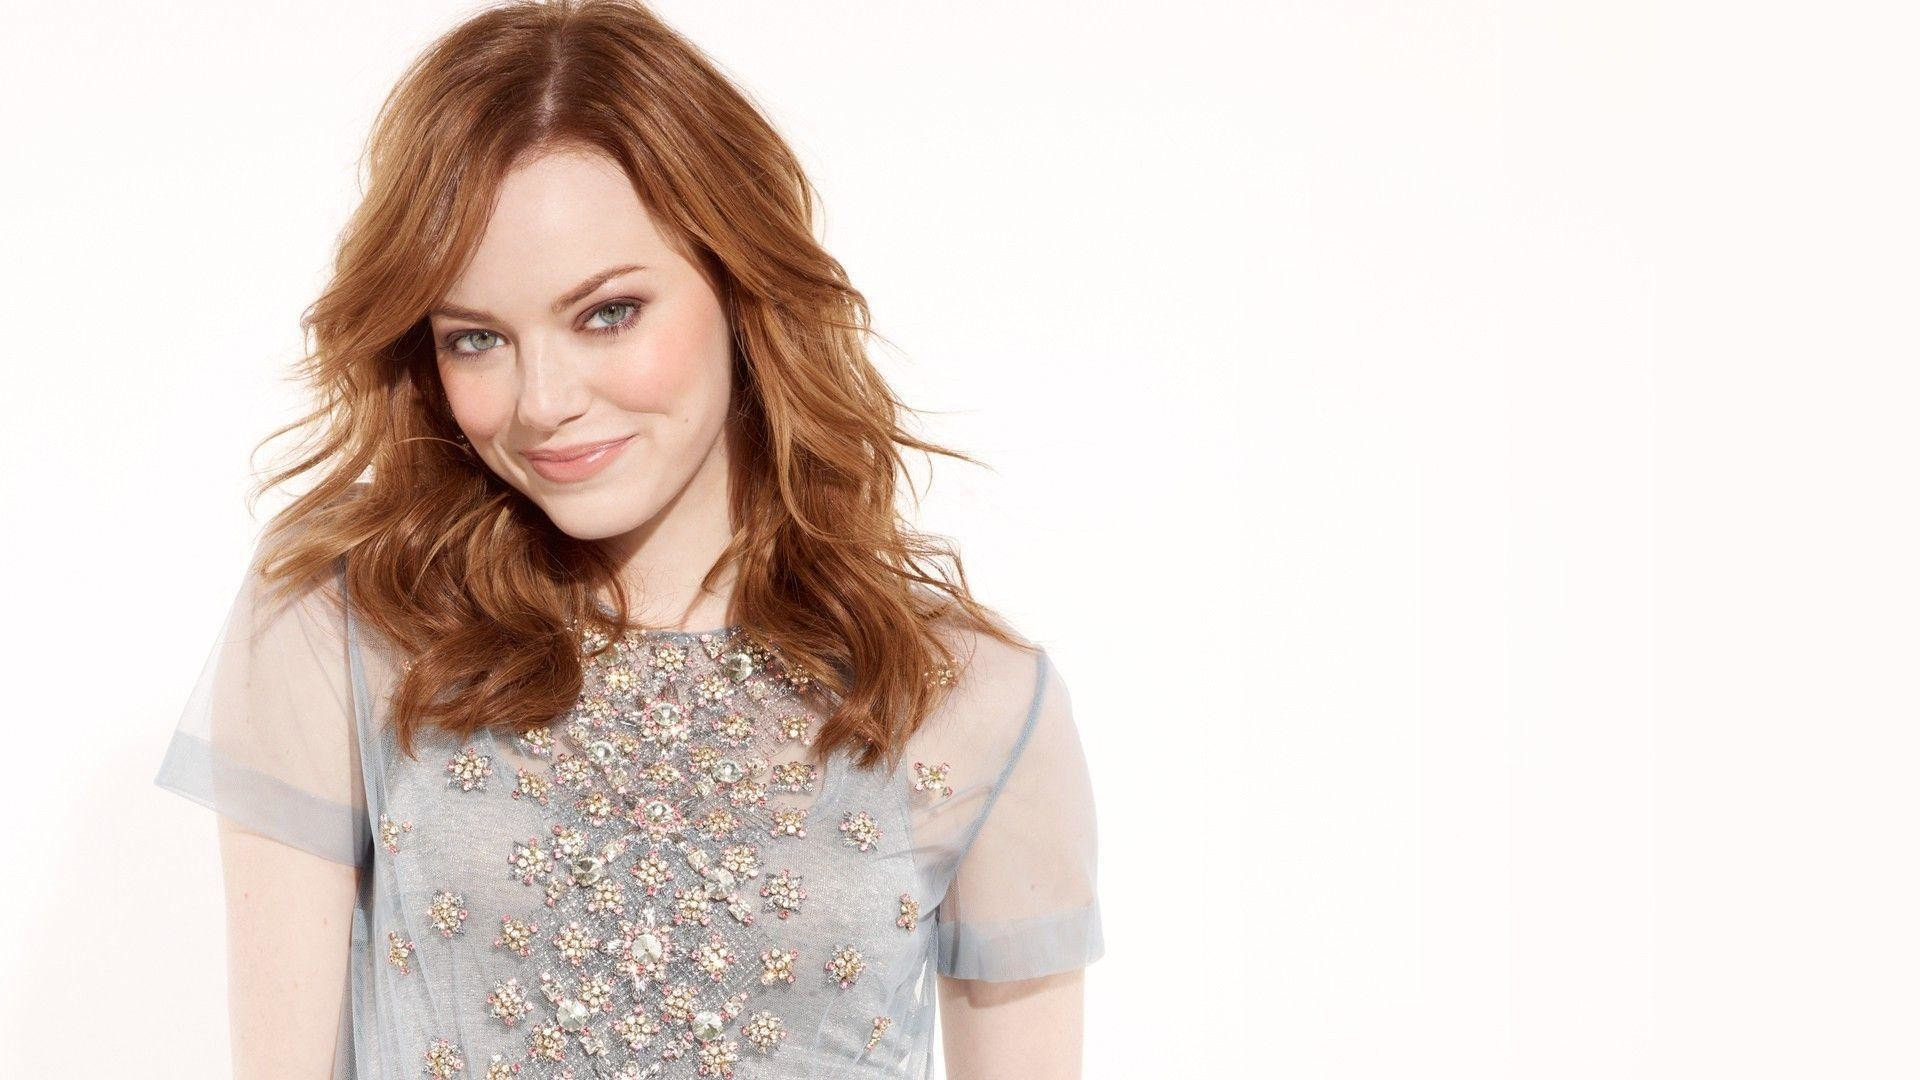 Top 50 Emma Stone HD Images Photos And Wallpapers Free Download